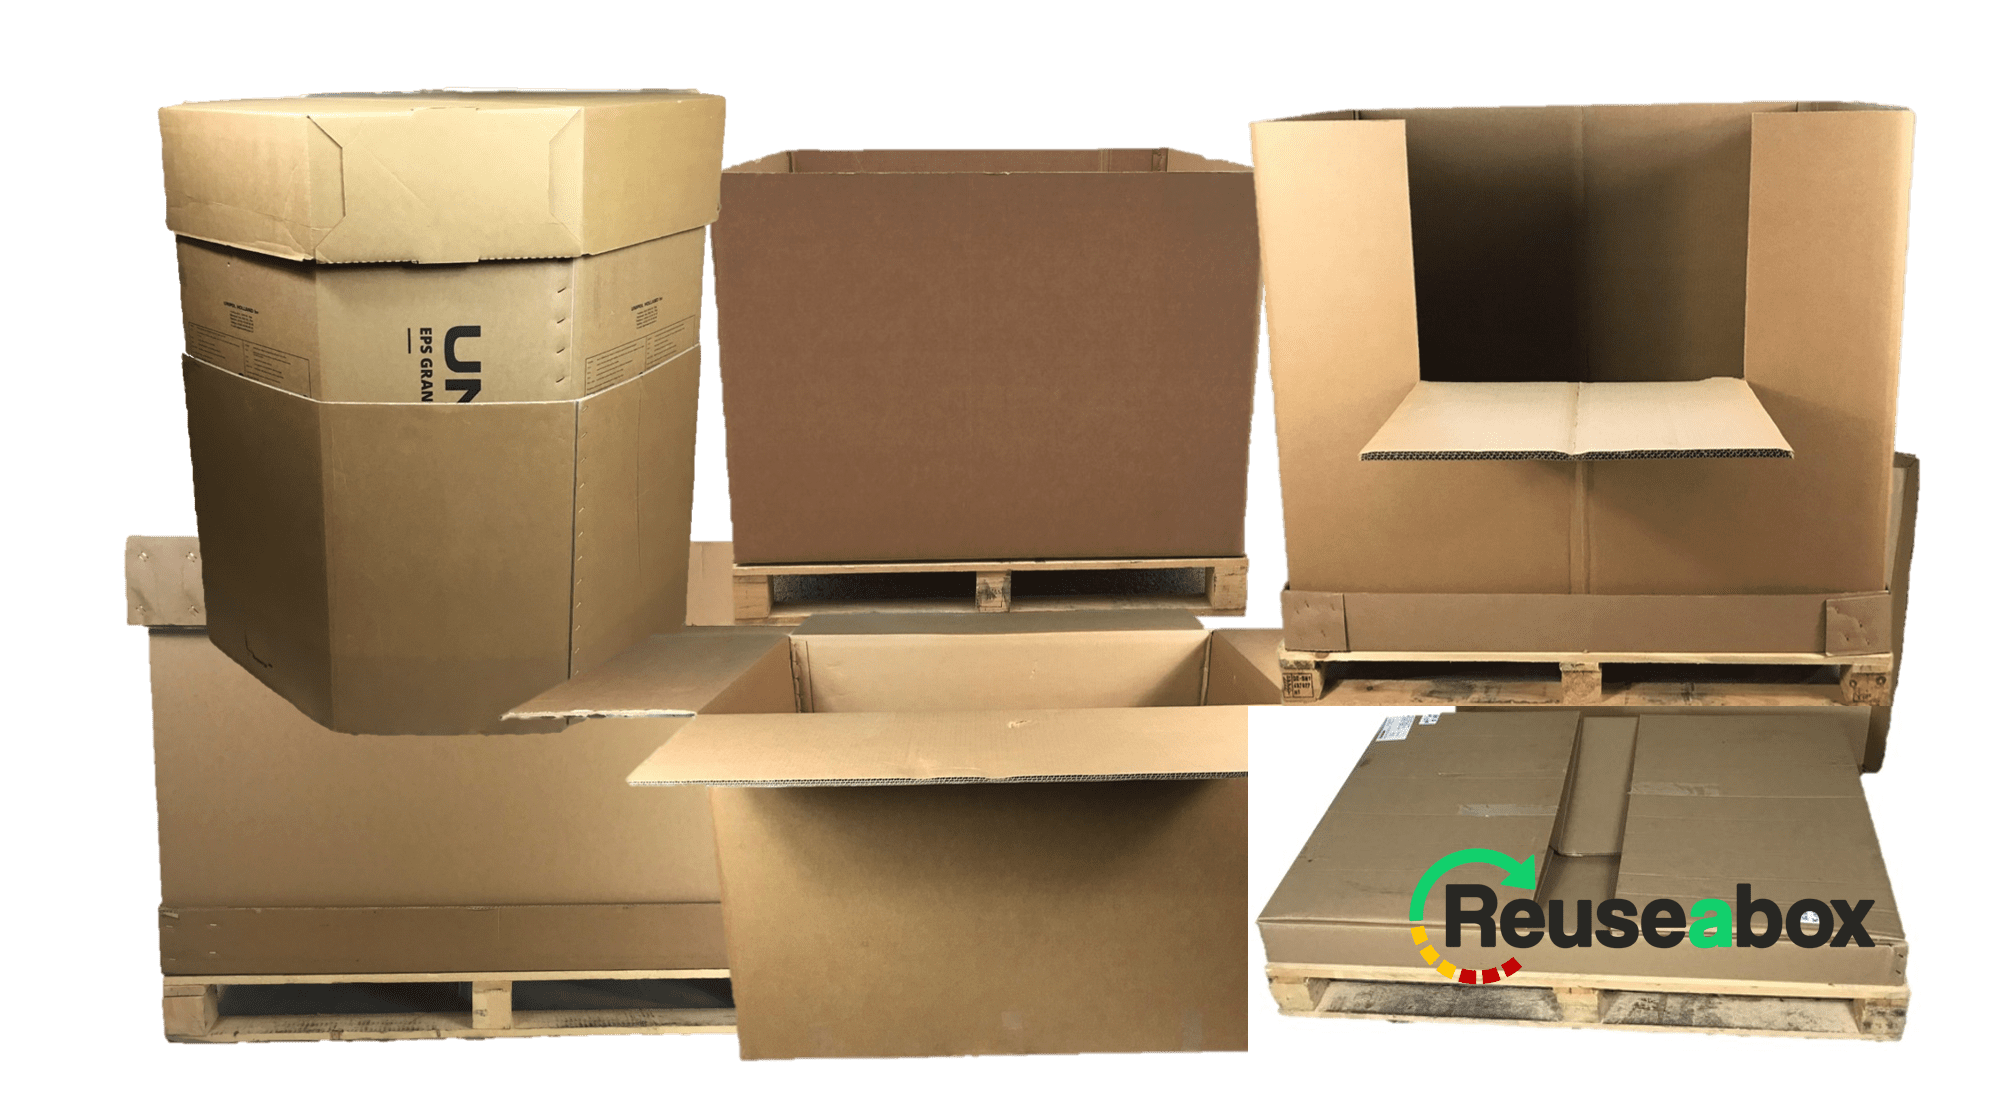 Reuseabox Pallet Boxes